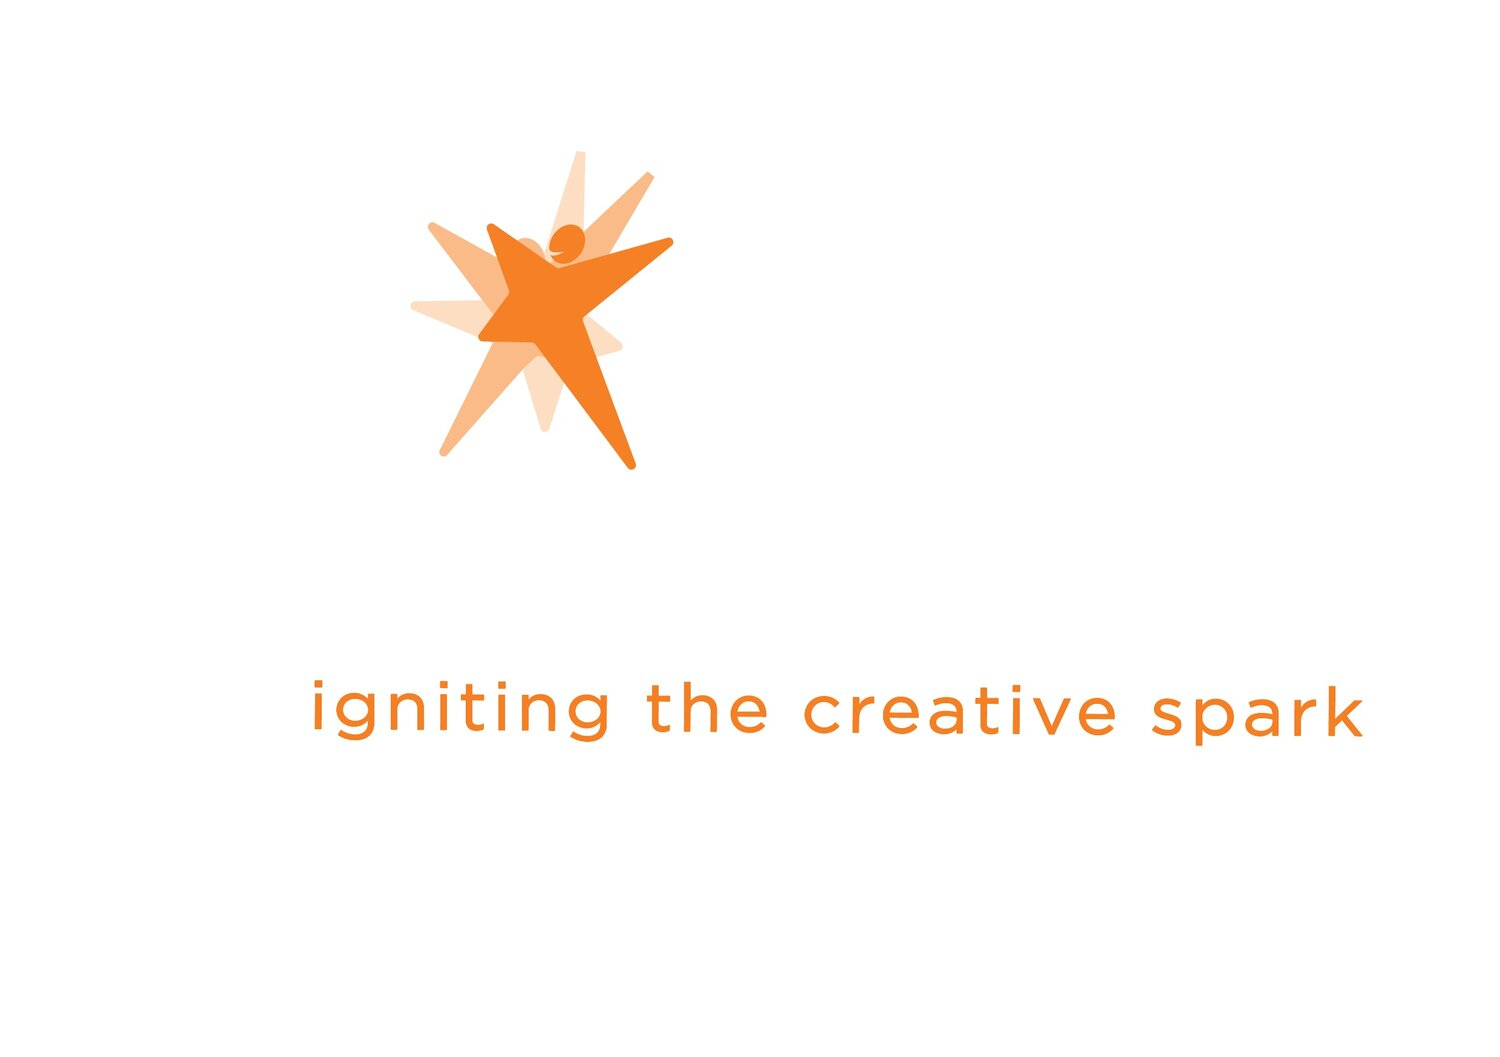 Creative Spark by Claire Hewitt